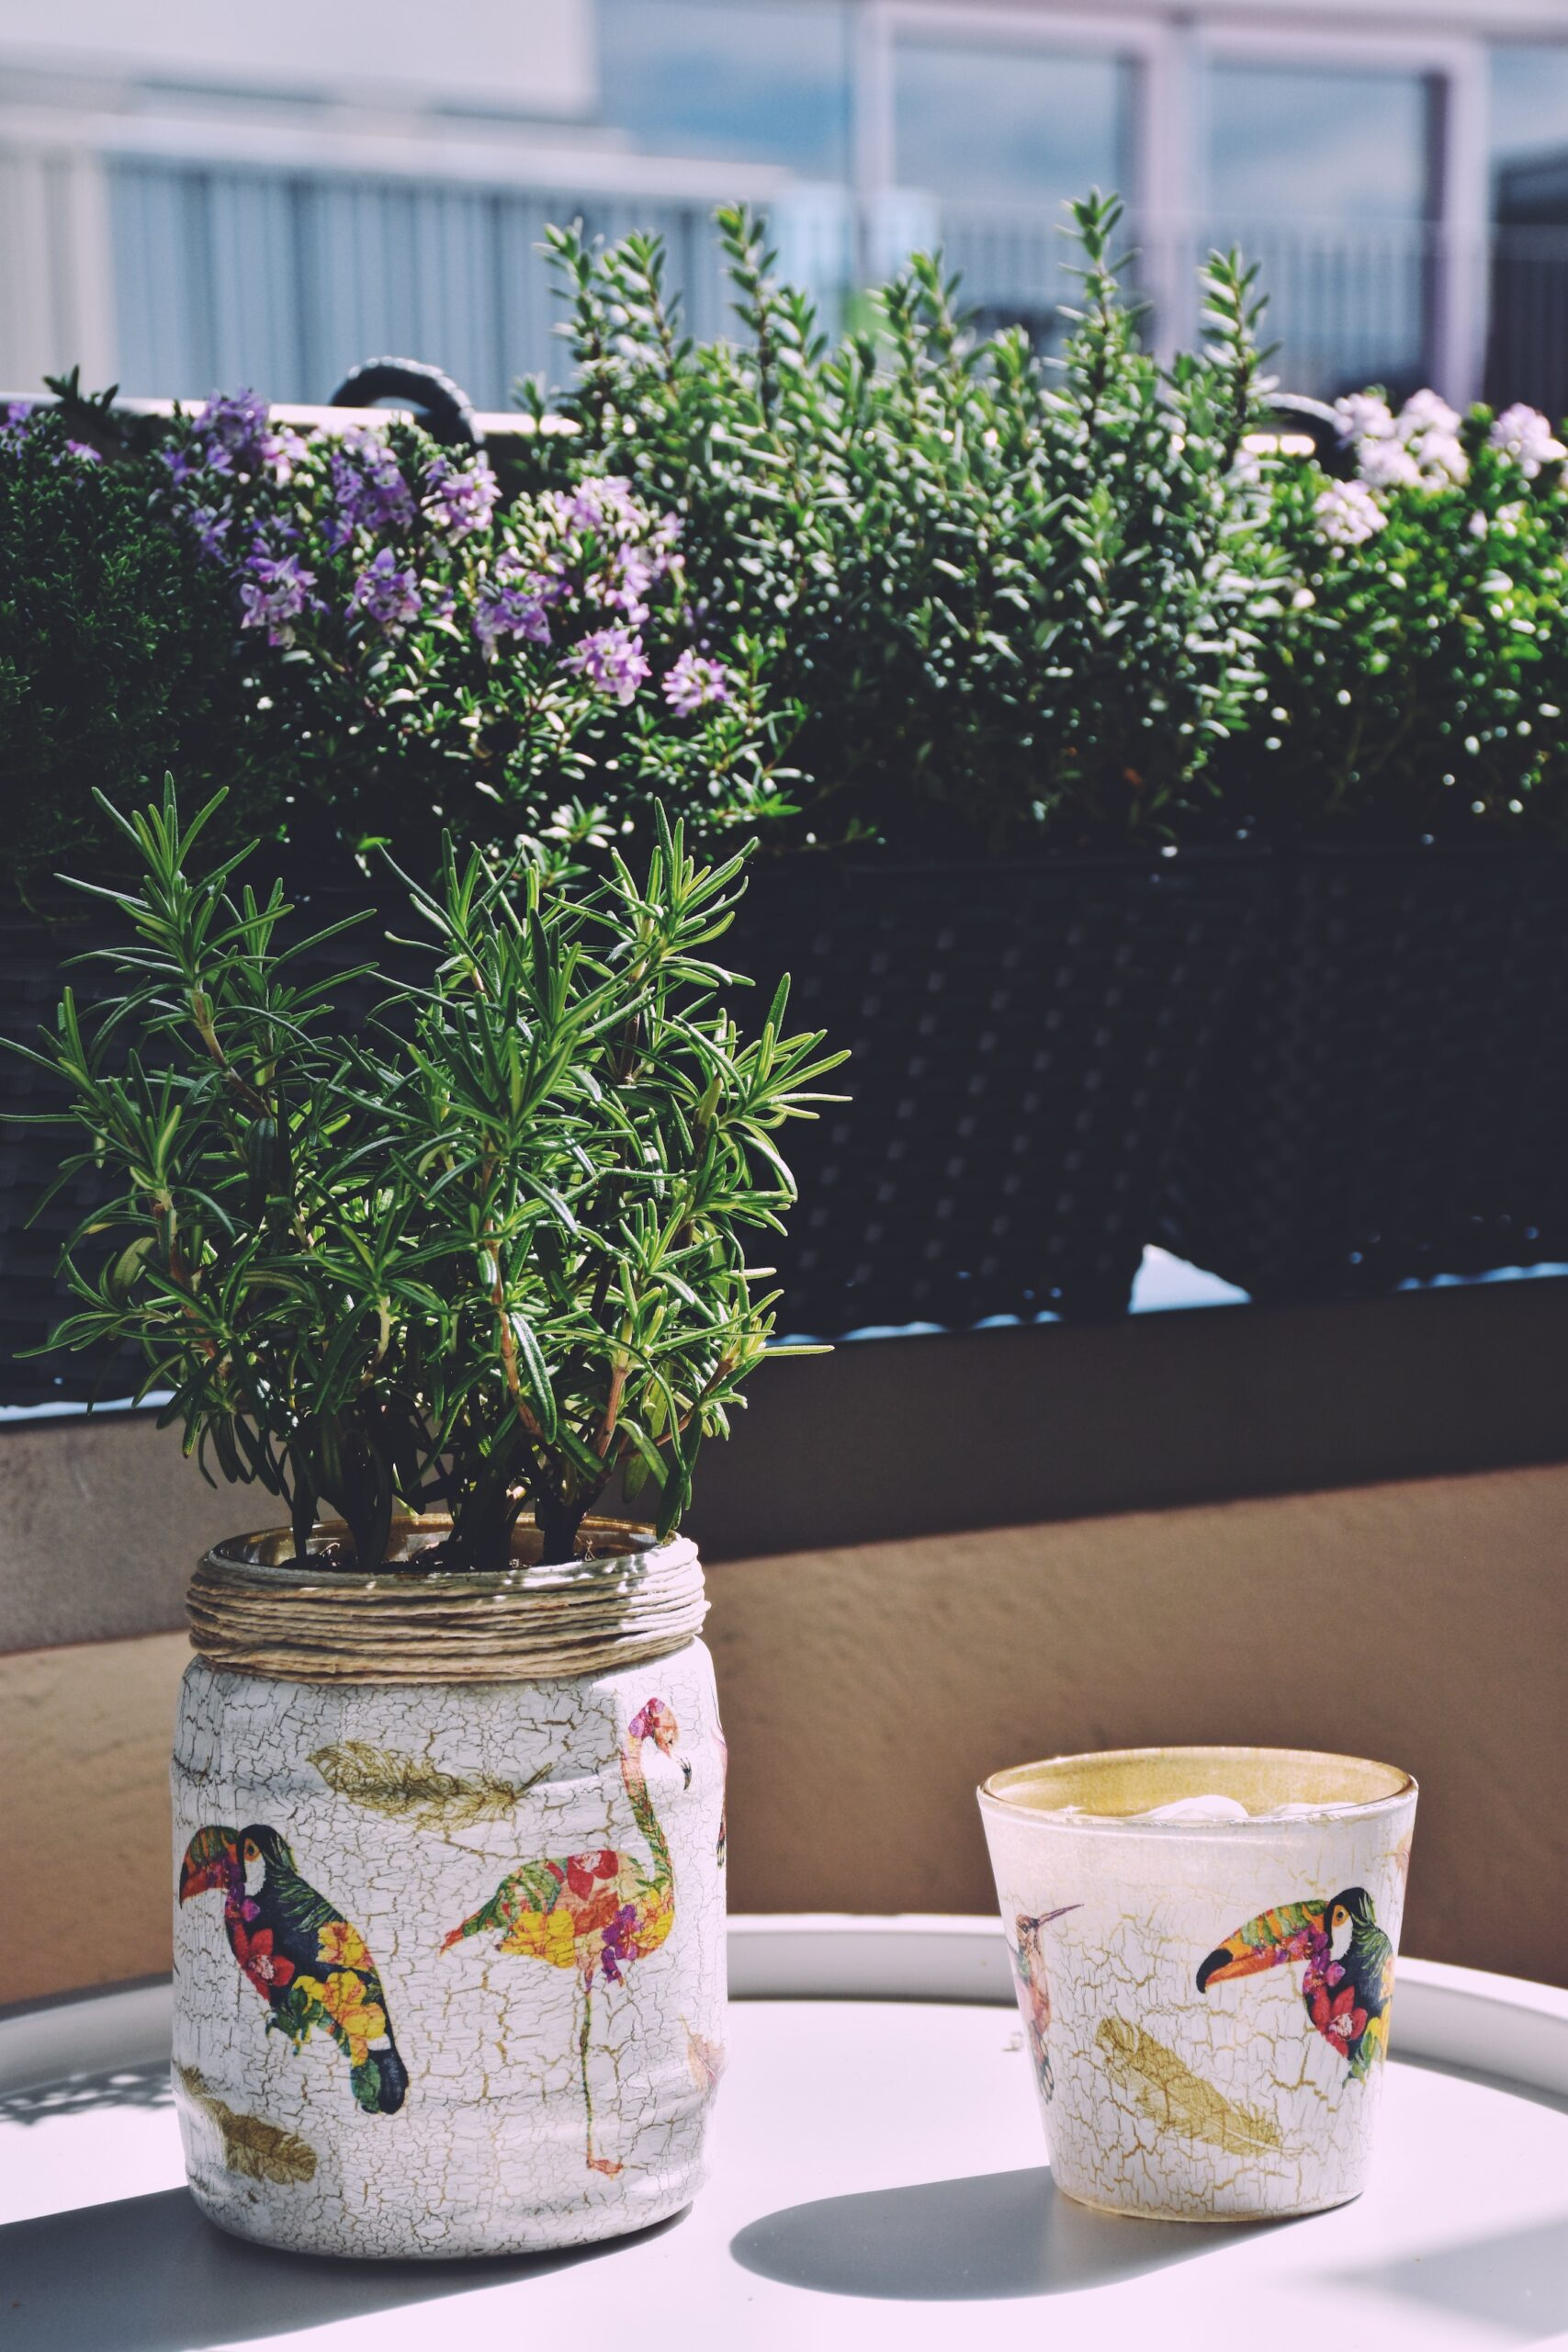 Upcycled glass jars as flower pots in the urban garden